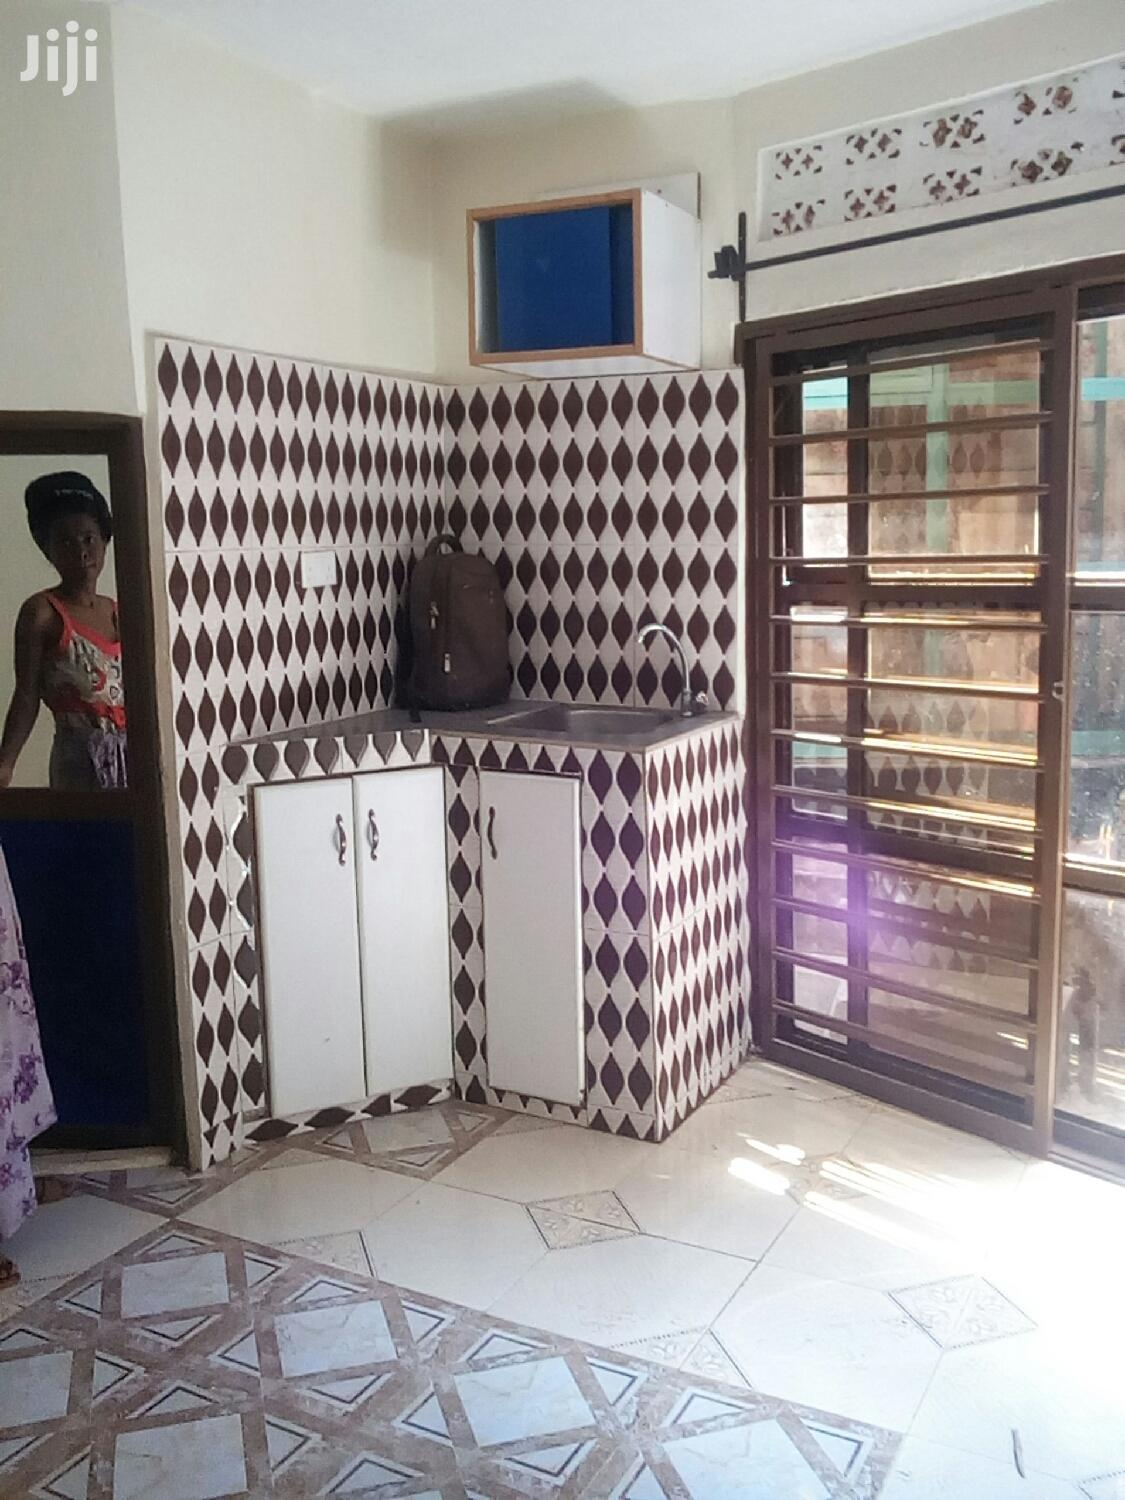 Studio Single Room For Rent In Kisaasi